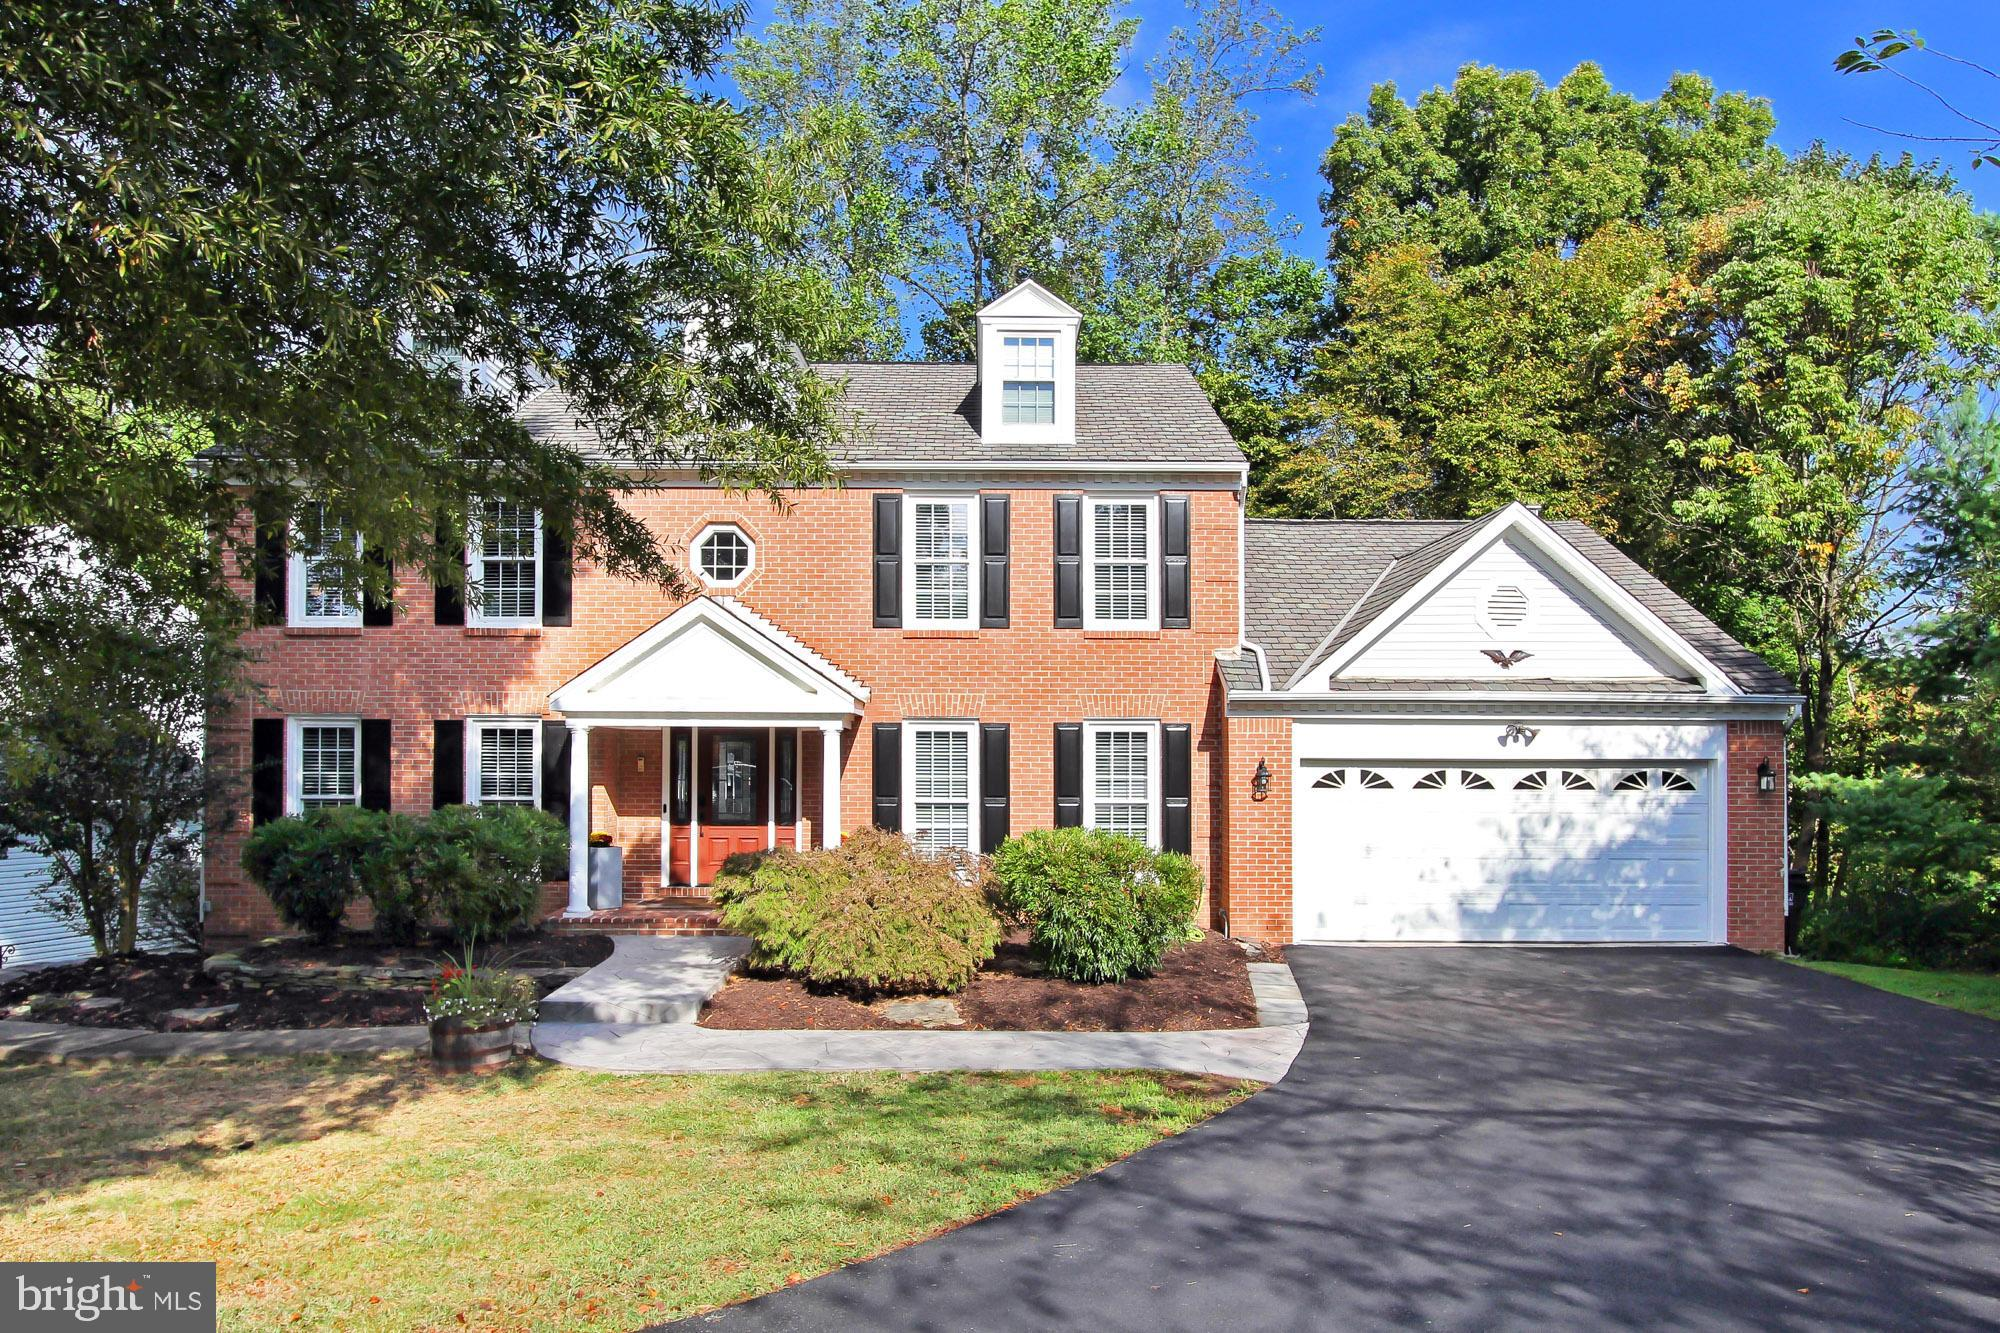 "Welcome Home to this stately brick 4 BR / 2.5 BA Colonial backing to woods! Completely UPDATED from Top to Bottom = MOVE-IN ready! The ""WOW!"" gourmet kitchen, w/ adjoining breakfast area and walk-in pantry, has been remodeled with new cabinets, granite counters and KitchenAid appliances! Two-story foyer, main level office / library! Family Room with vaulted ceiling, skylights, and granite stone gas fireplace.  Gracious Master Suite with updated en suite BA, vaulted ceiling and huge walk-in closet!  Expansive walkout basement w/ full windows, tier media area, space for exercise equipment, and super sized storage room.  NEW deck with stairs to backyard overlooks woods!  EZ stroll to Lake Mercer and close to area parks.  Commuter options include Fairfax County Parkway ("